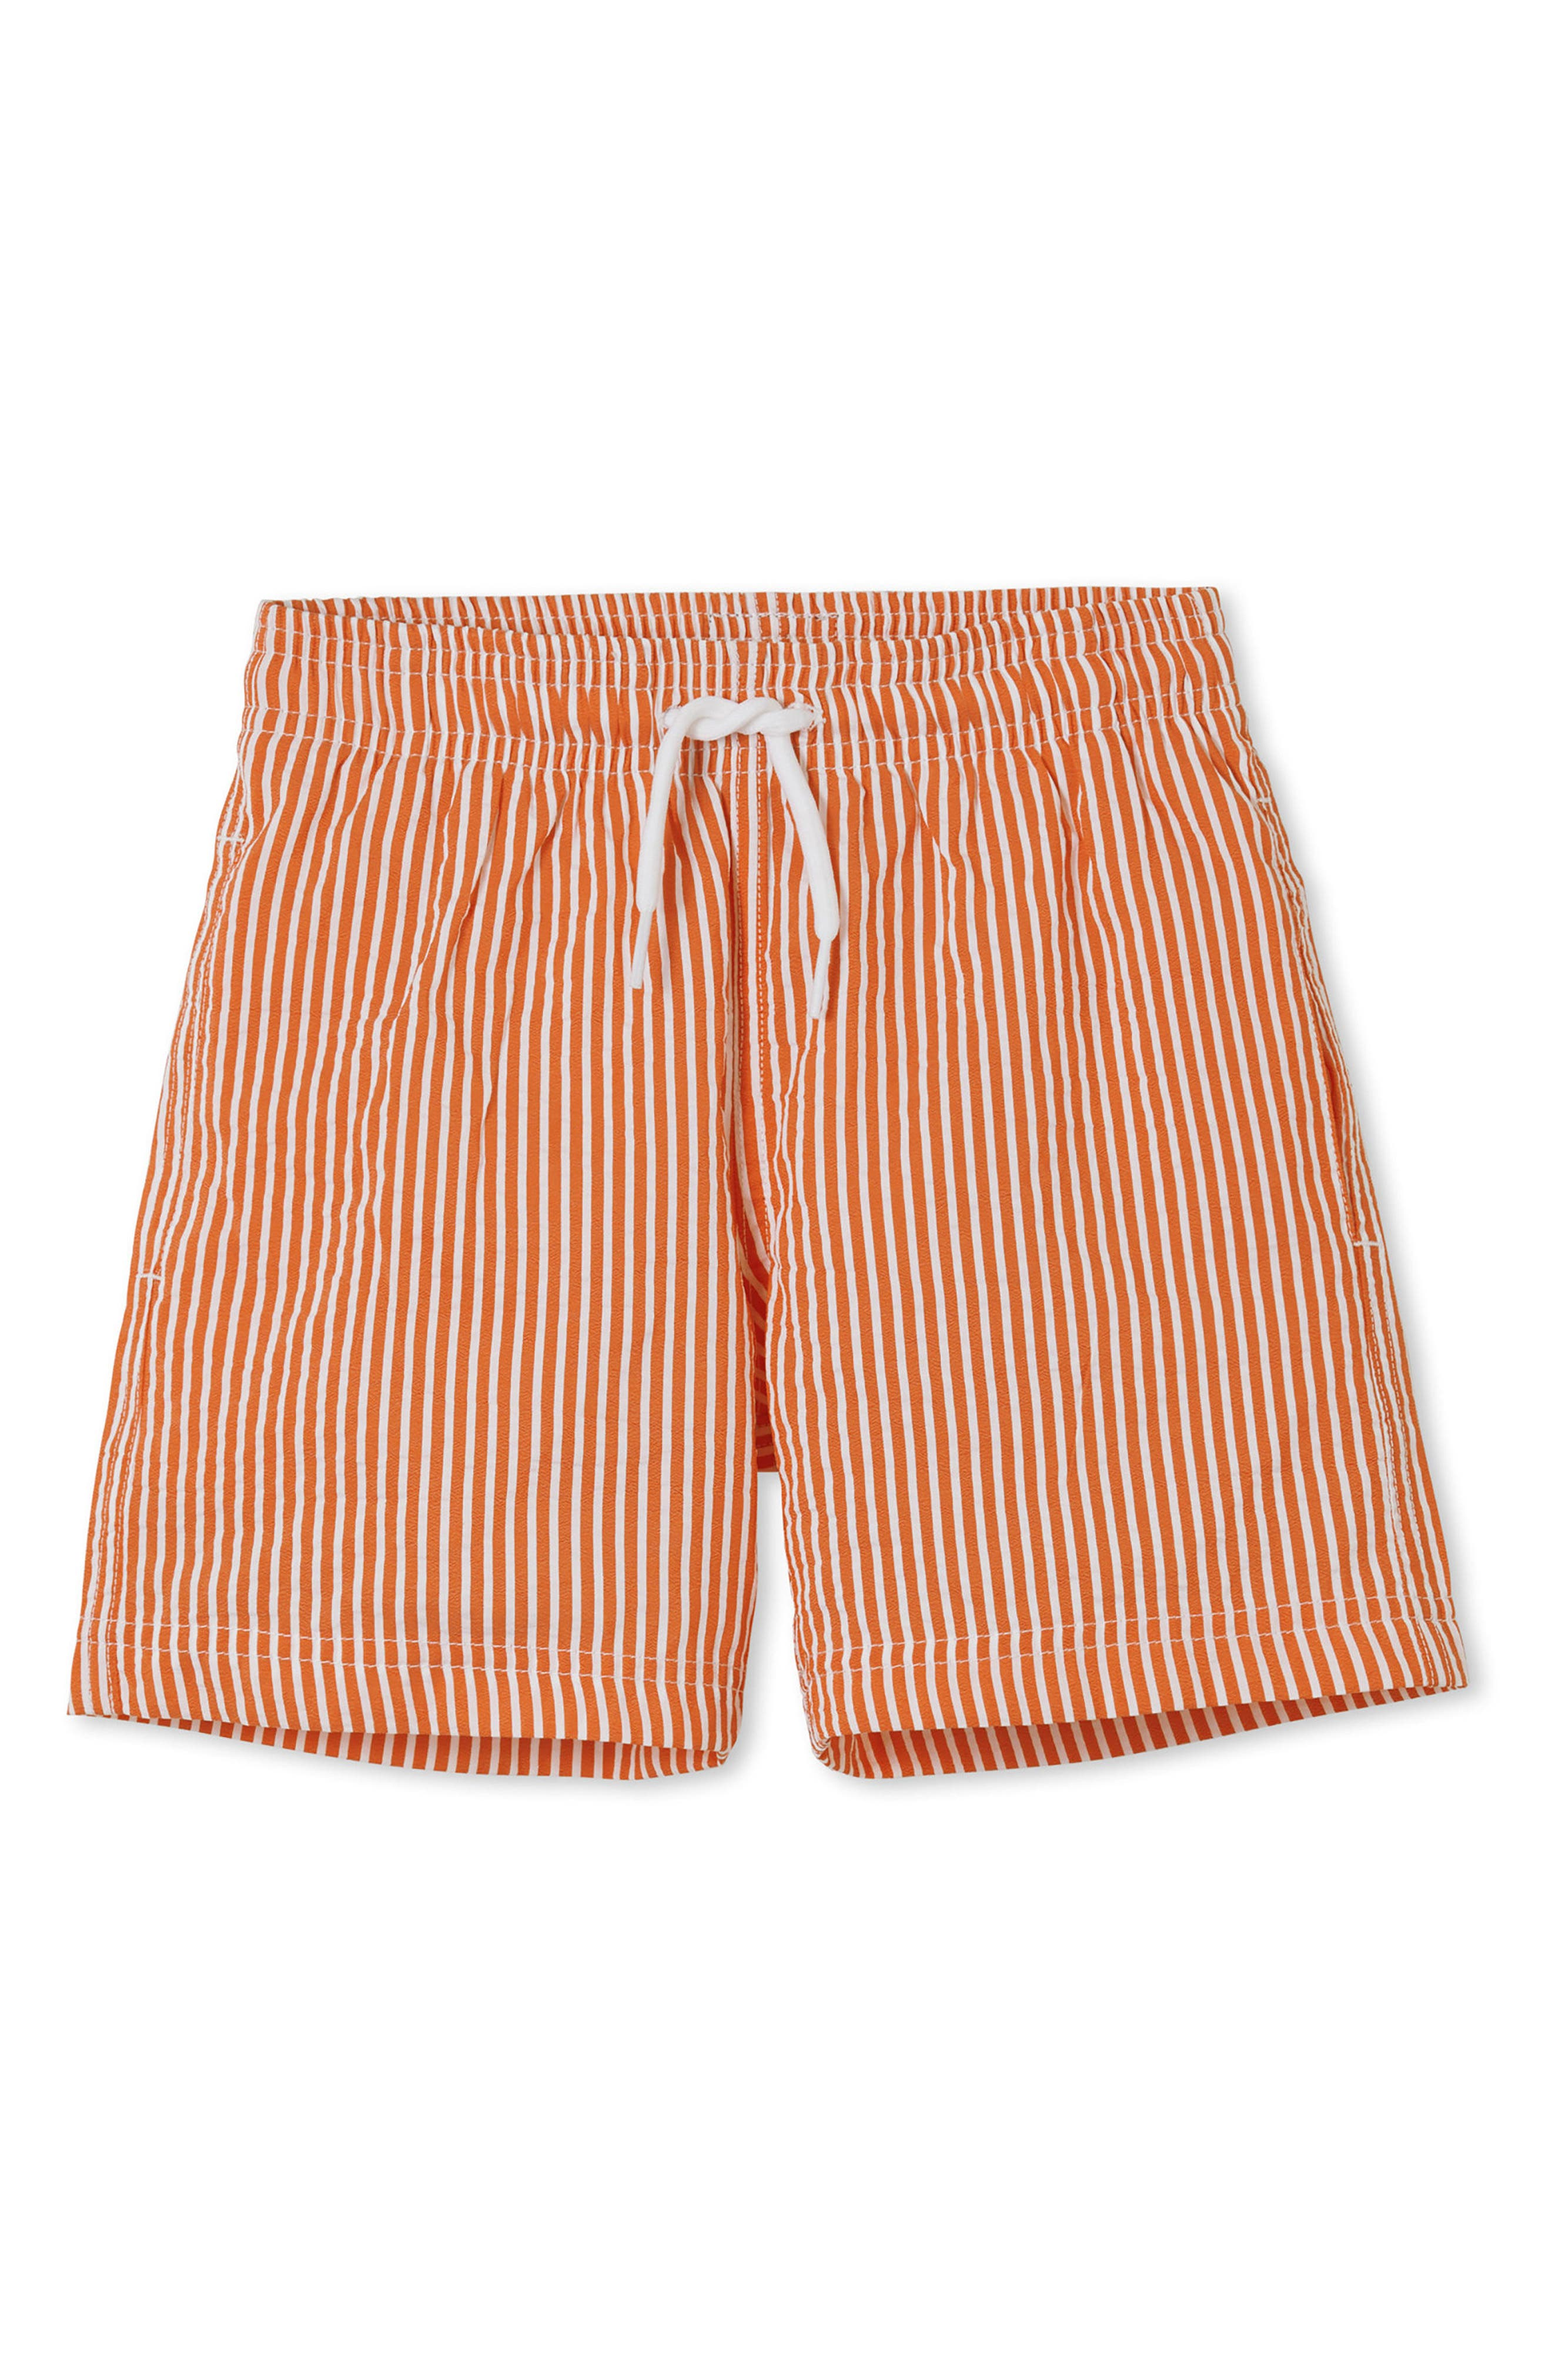 Stella Cove Orange Stripe Swim Trunks (Toddler Boys & Little Boys)